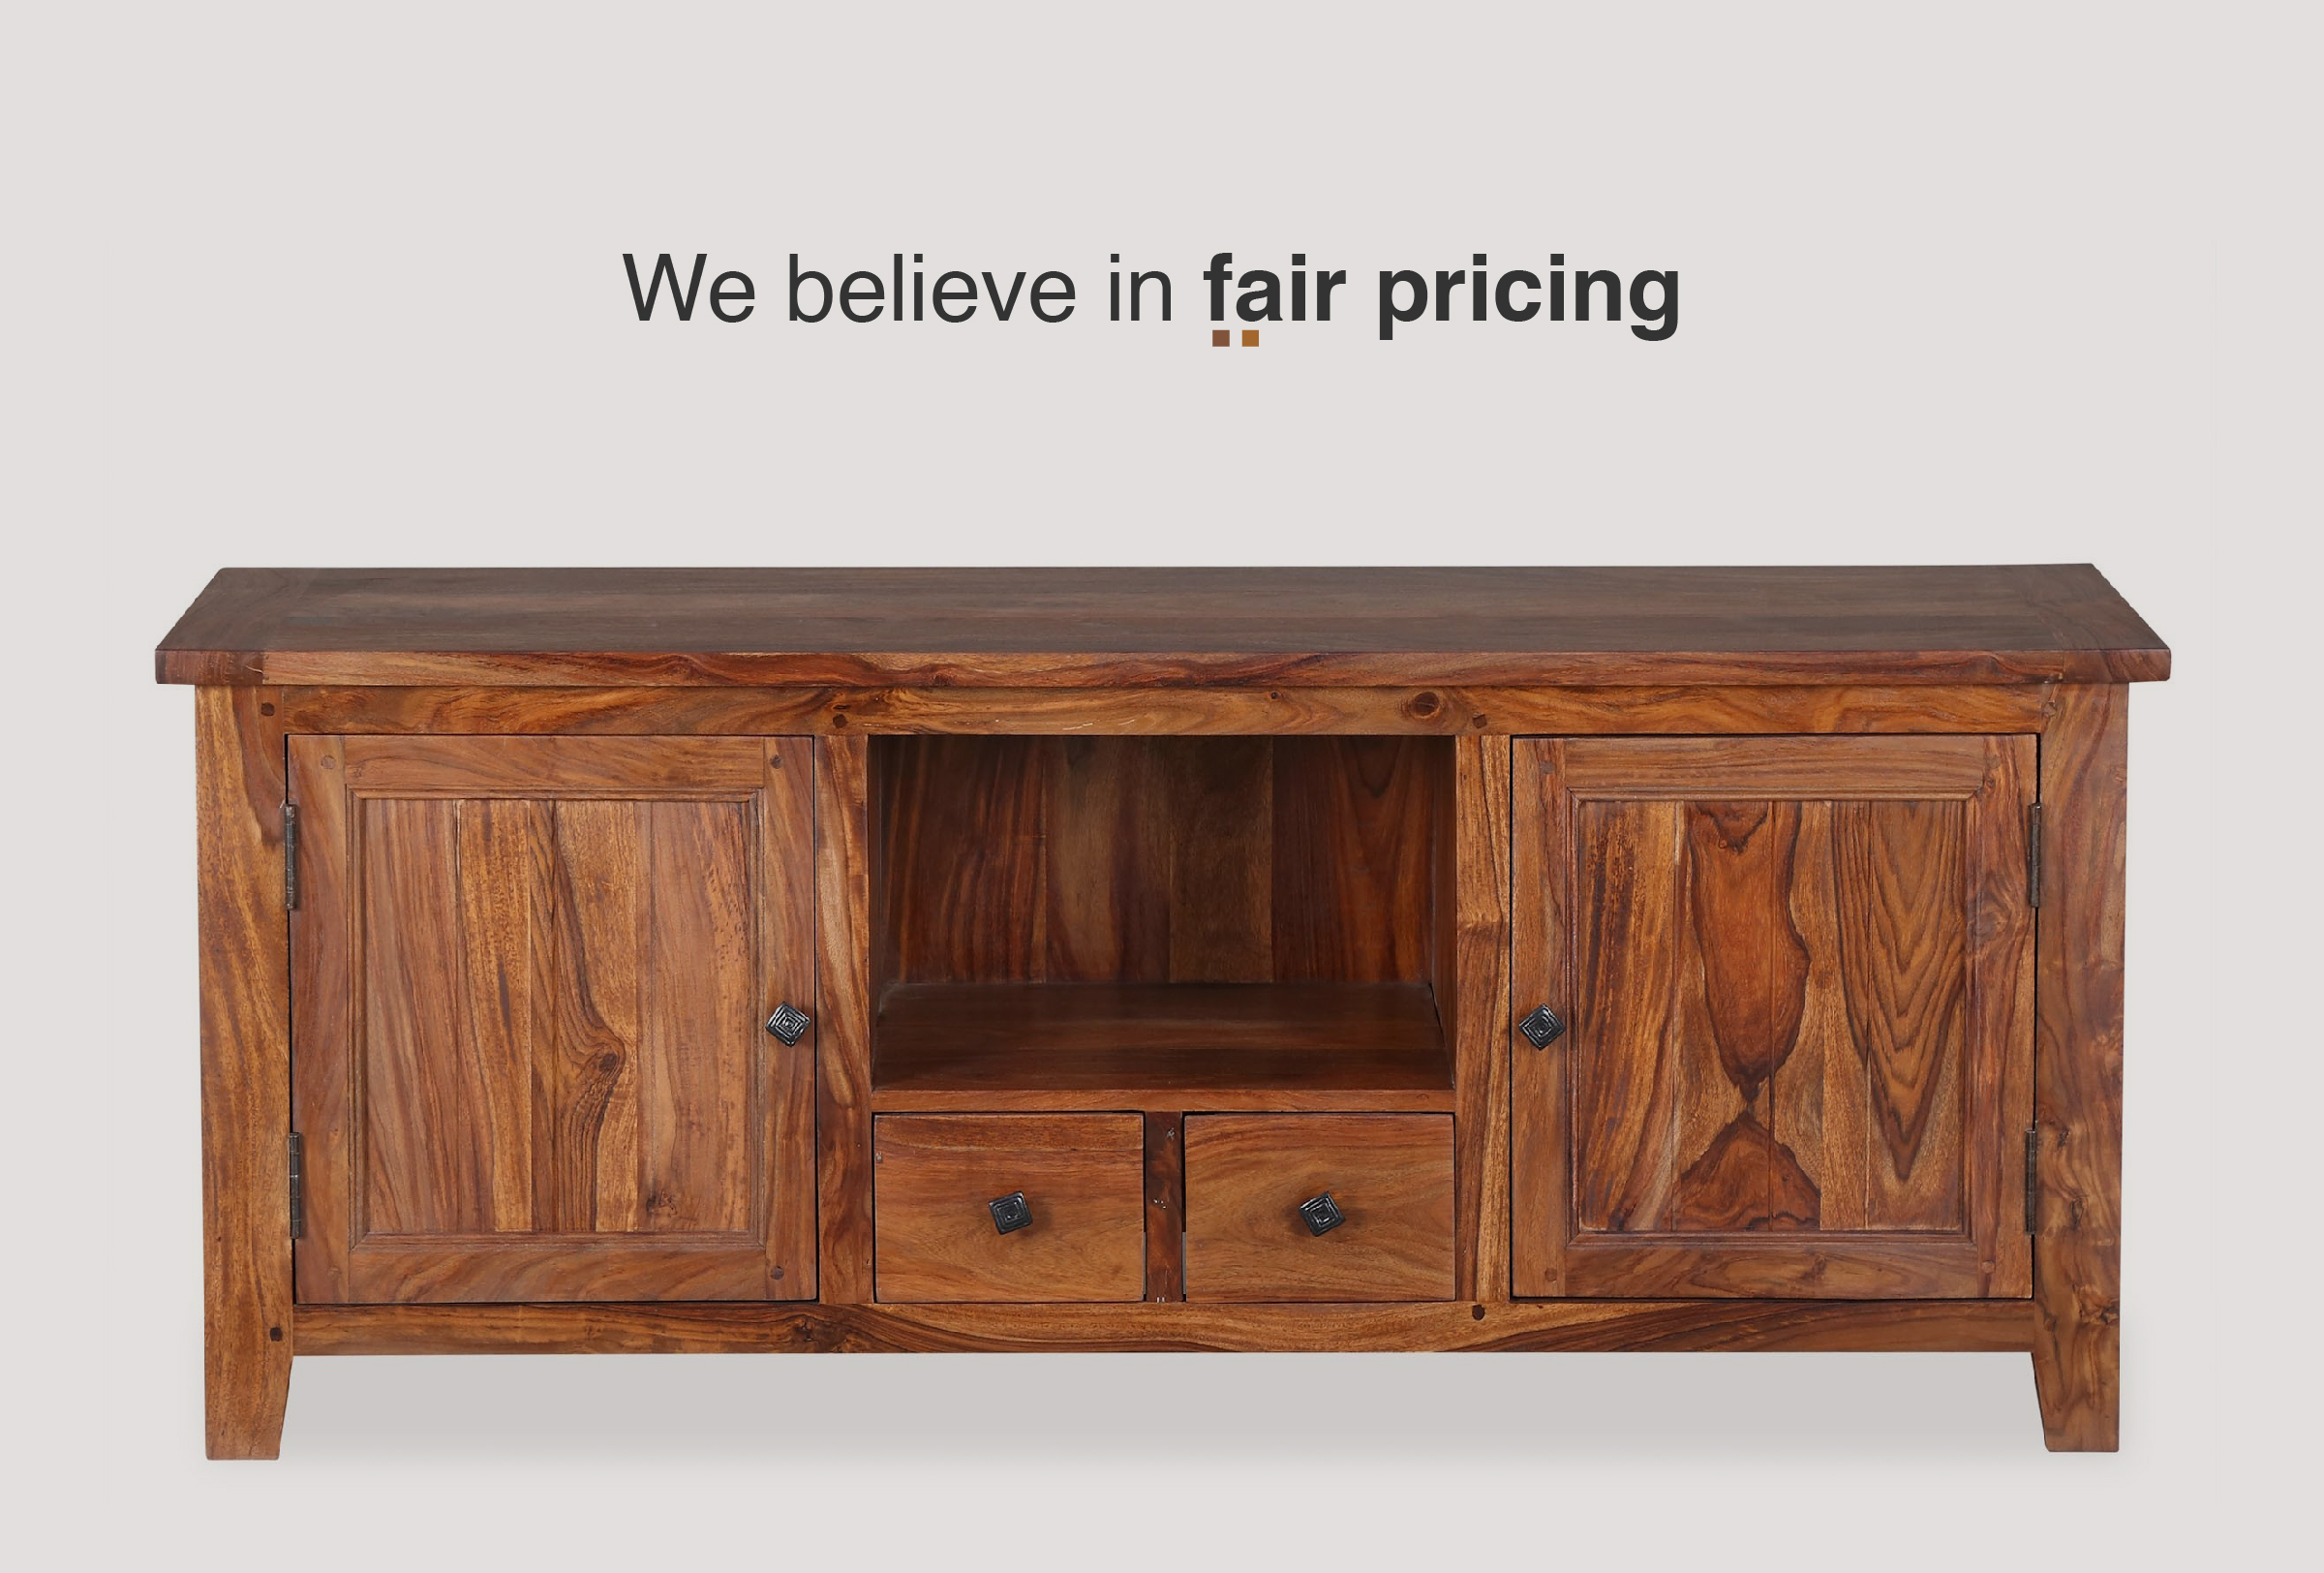 We believe in fair pricing